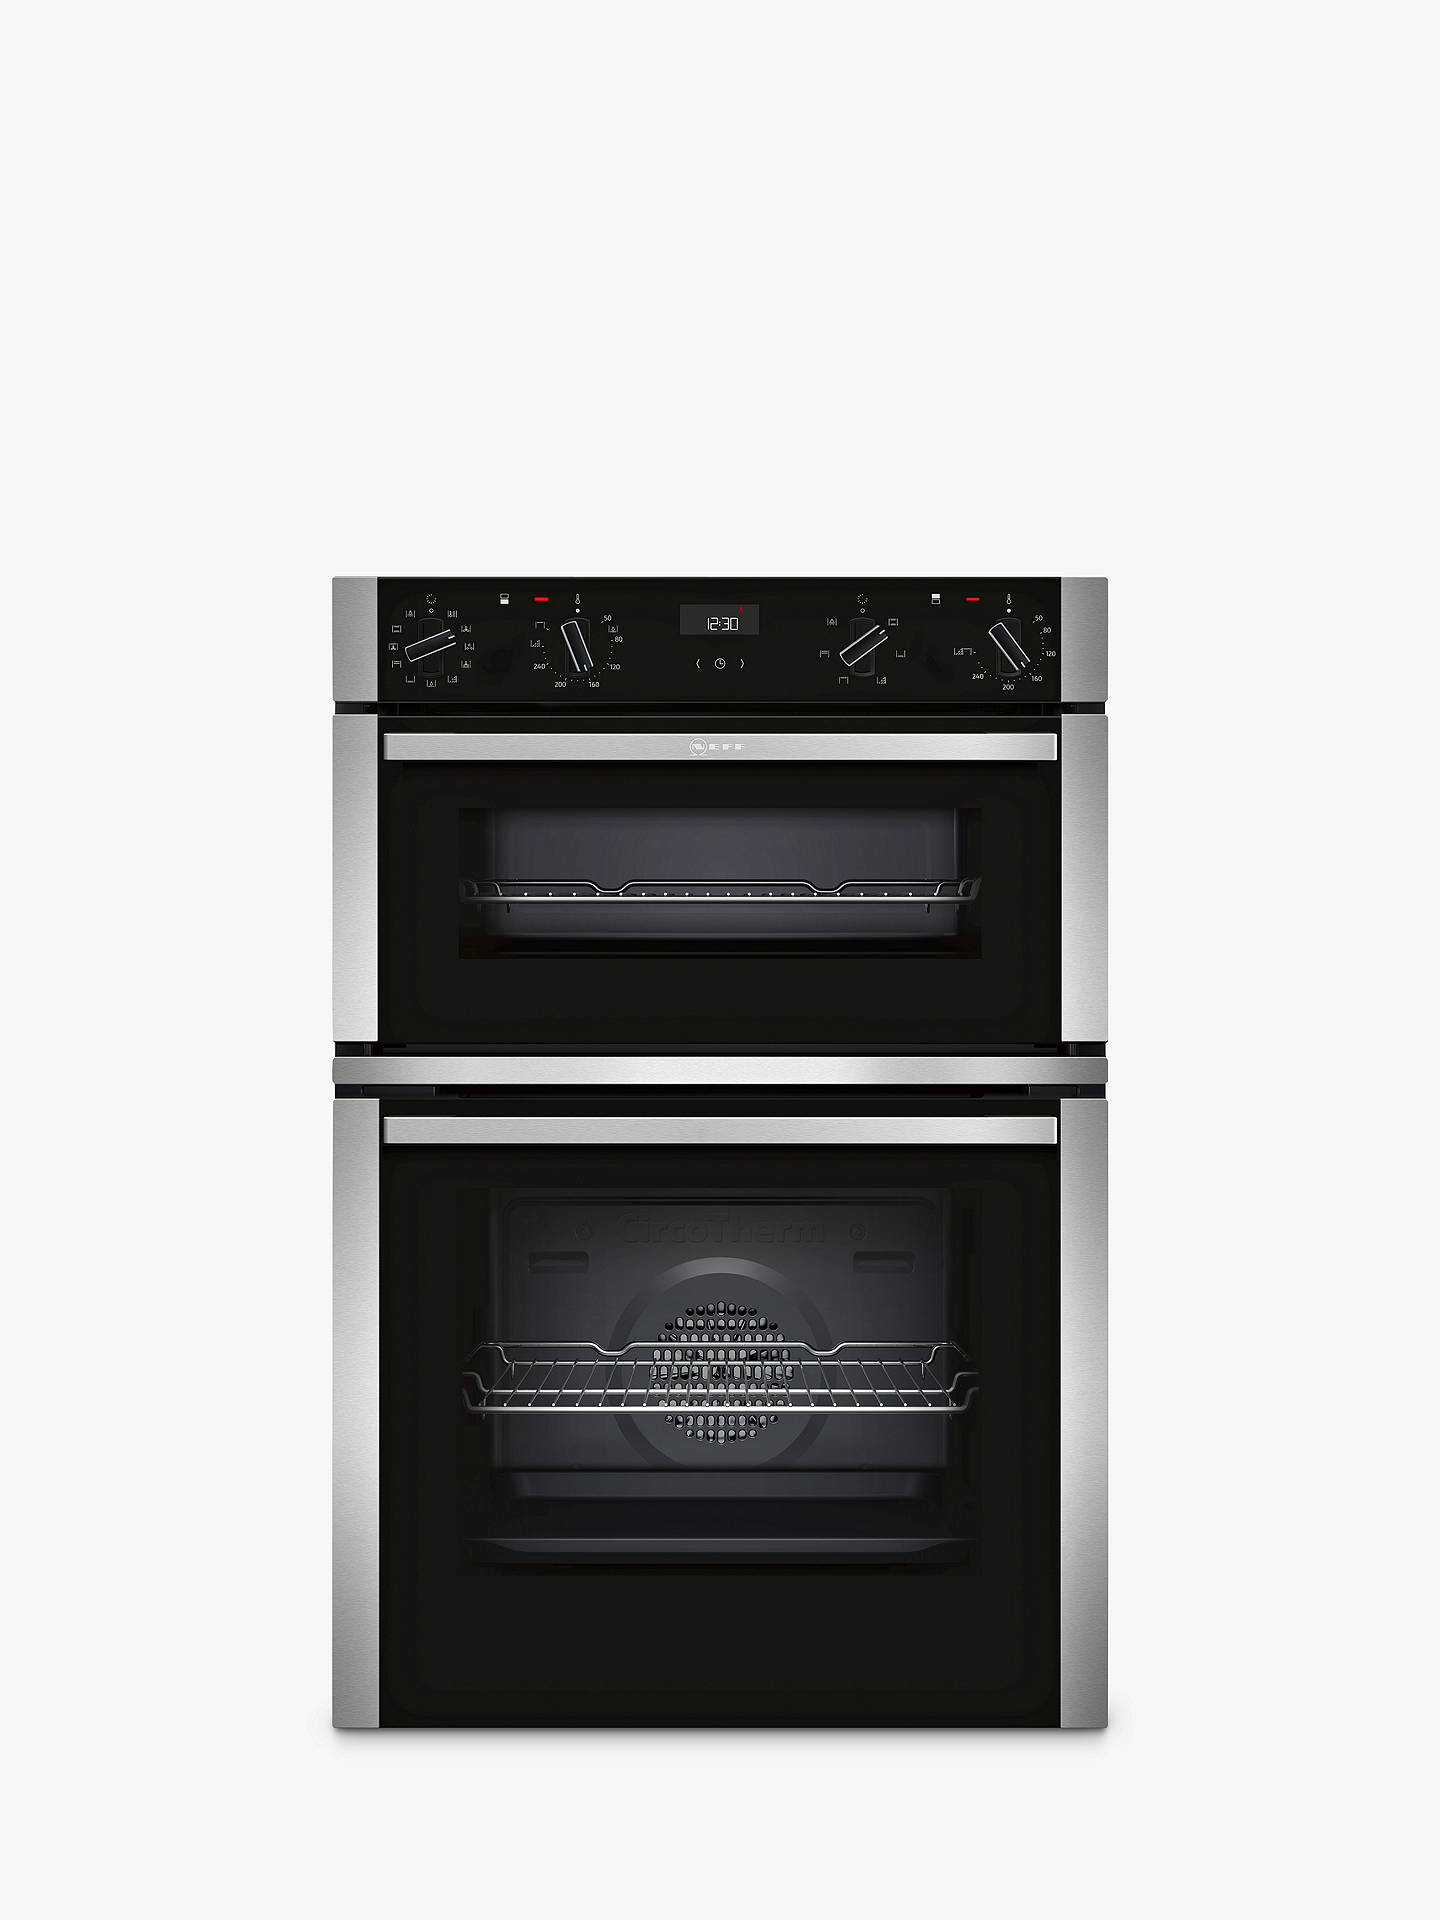 neff u1ace5hn0b built in double oven stainless steel at. Black Bedroom Furniture Sets. Home Design Ideas